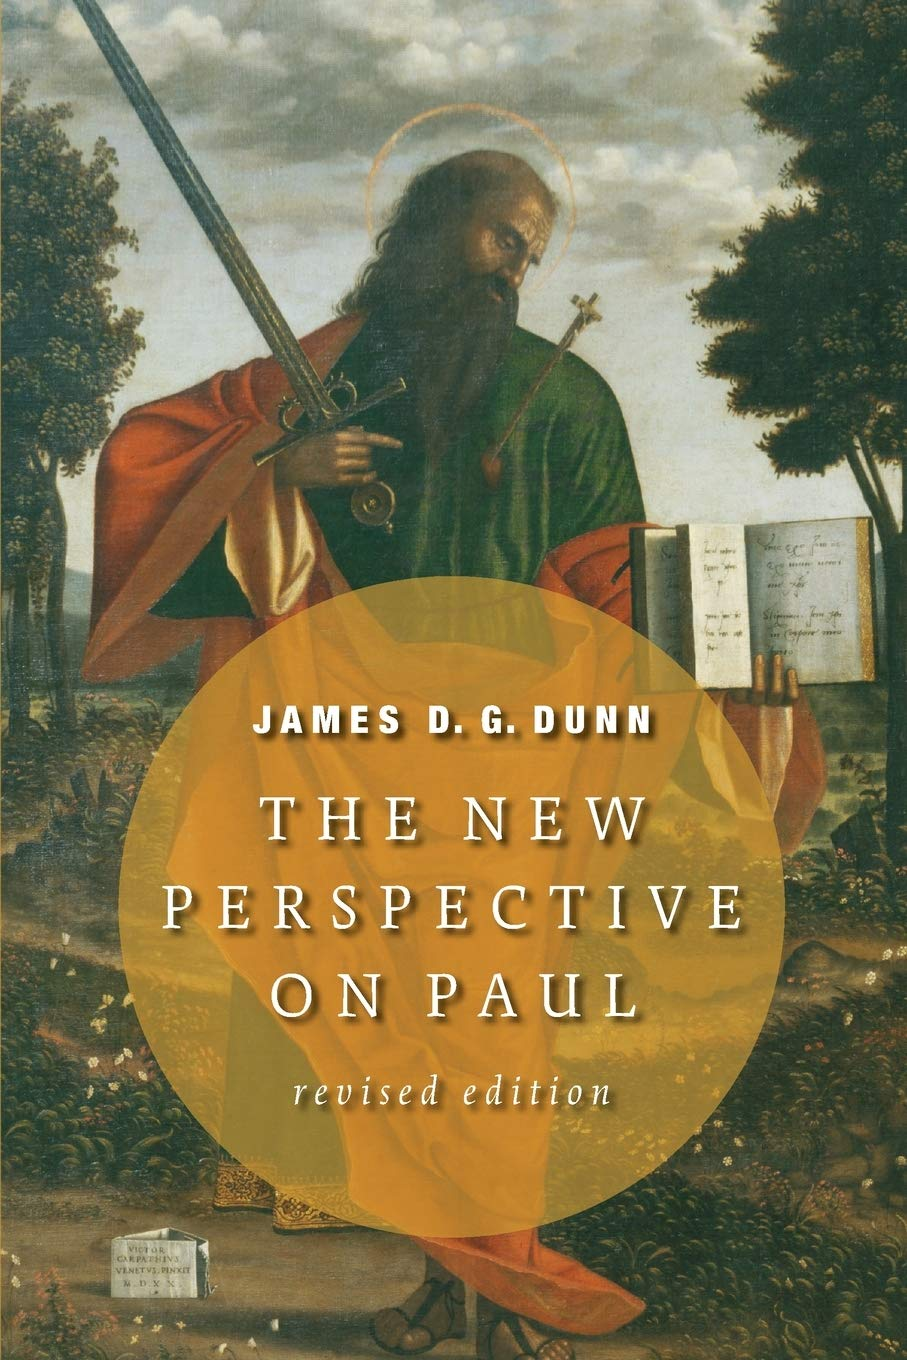 The New Perspective on Paul: Dunn, James D. G.: 9780802845627 ...